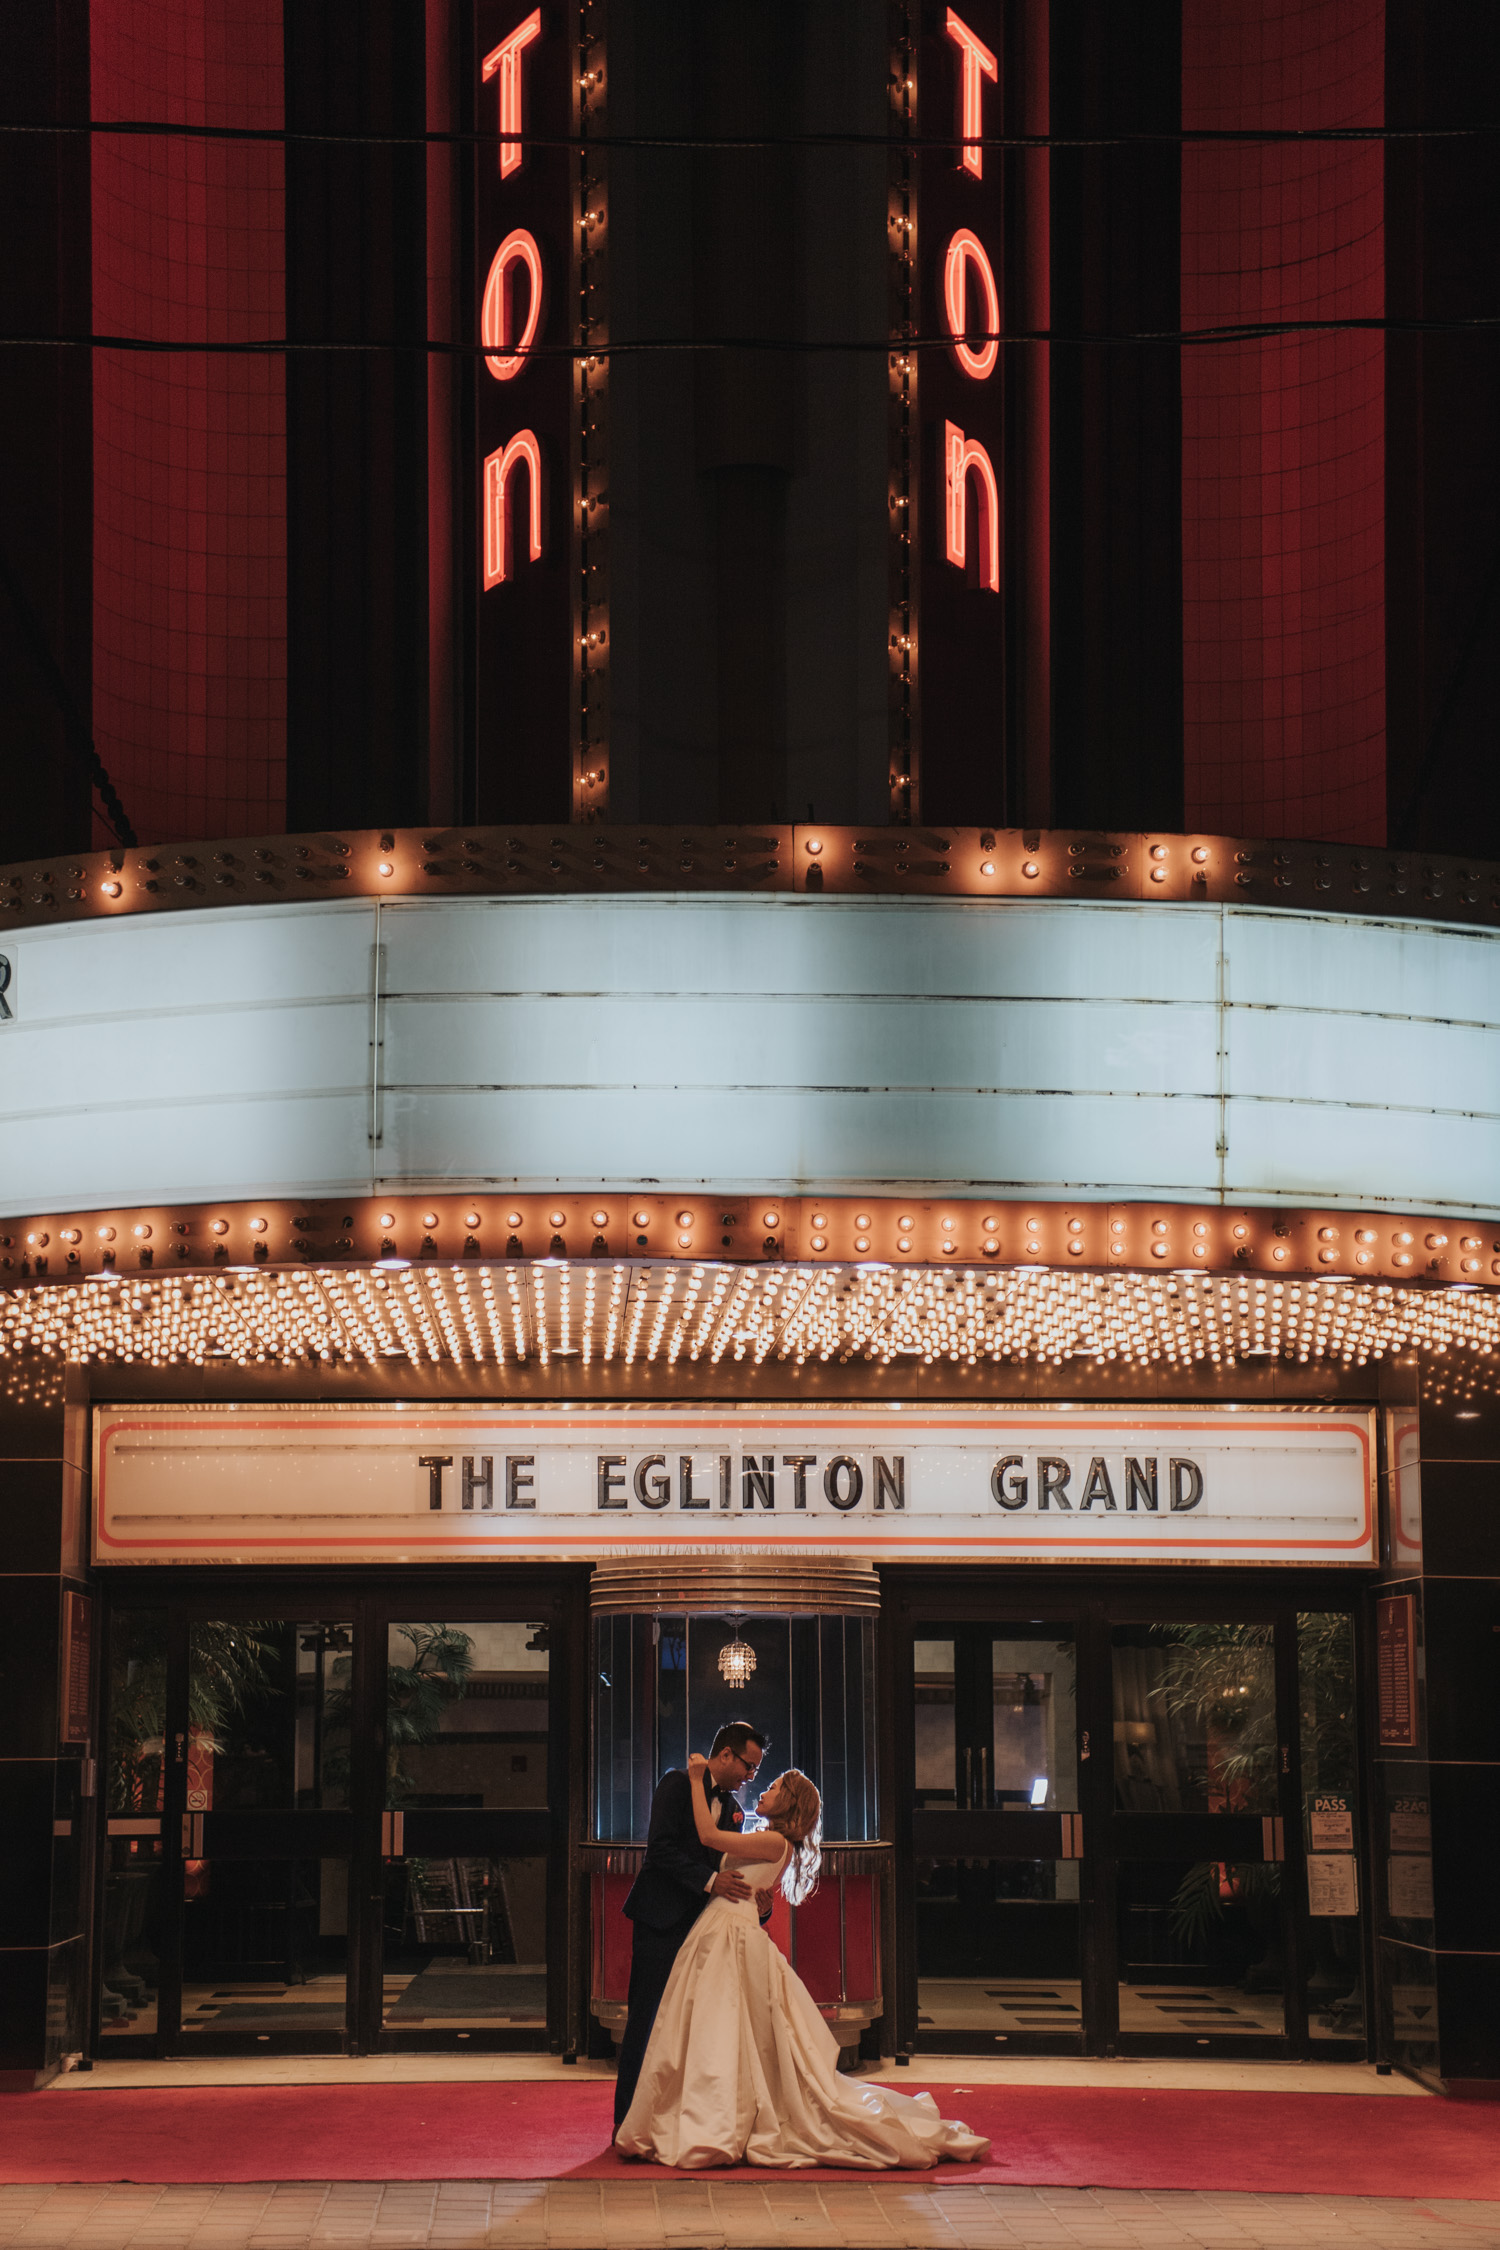 The Eglinton Grand Front Marquee Night Photo